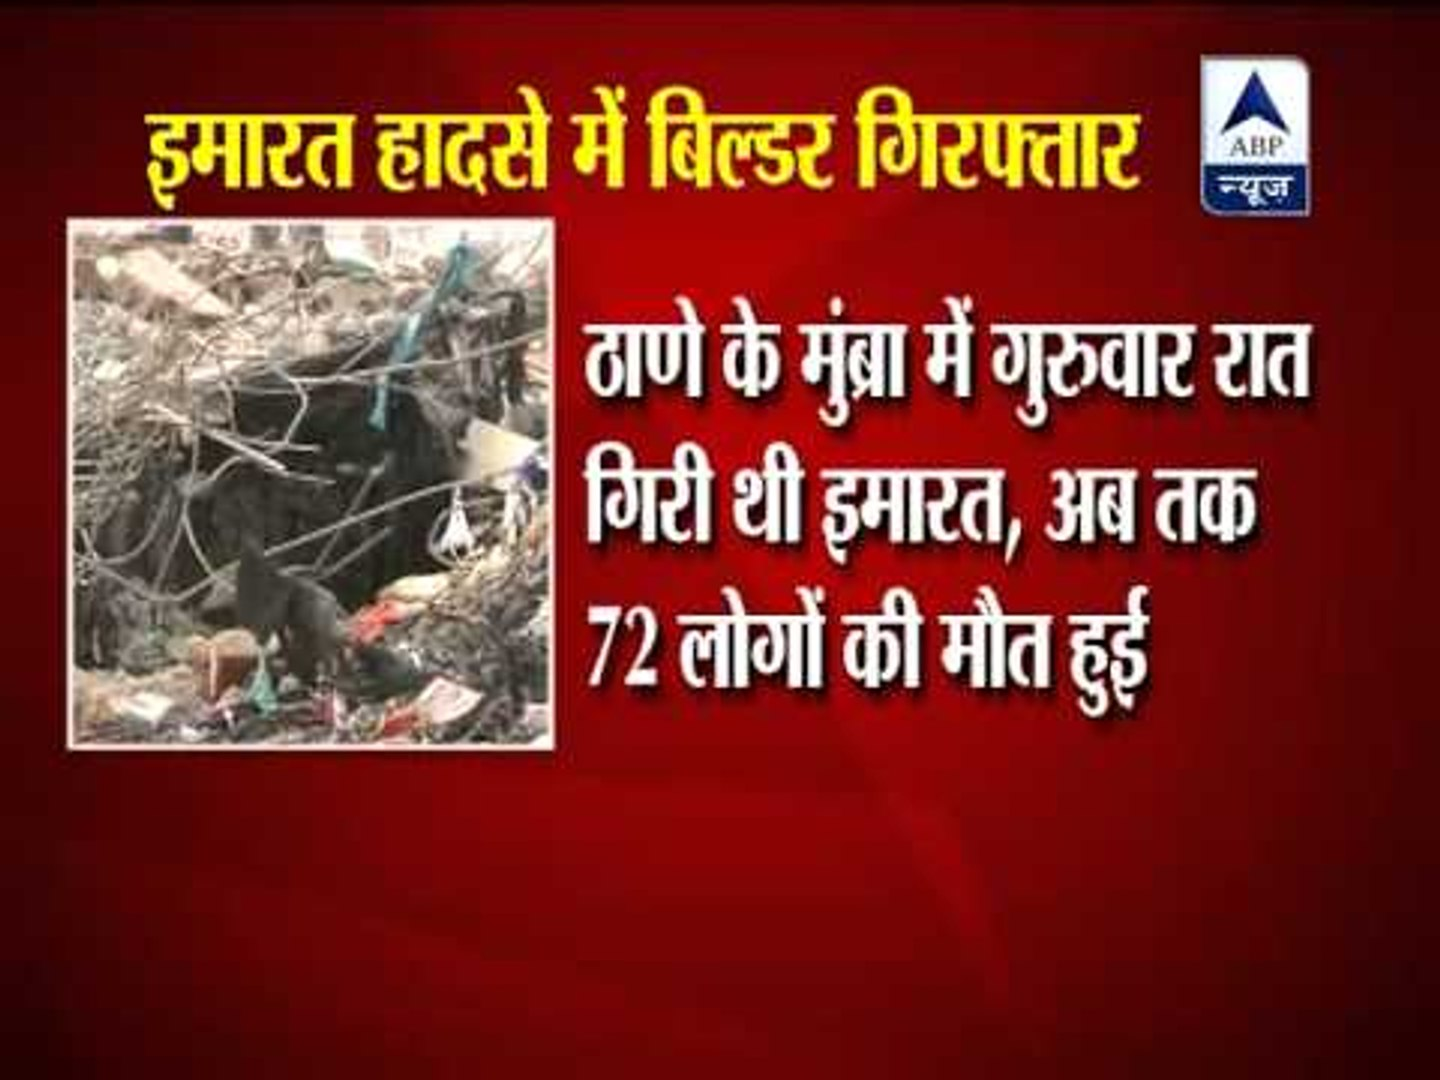 Mumbra building collapse: Both builders arrested